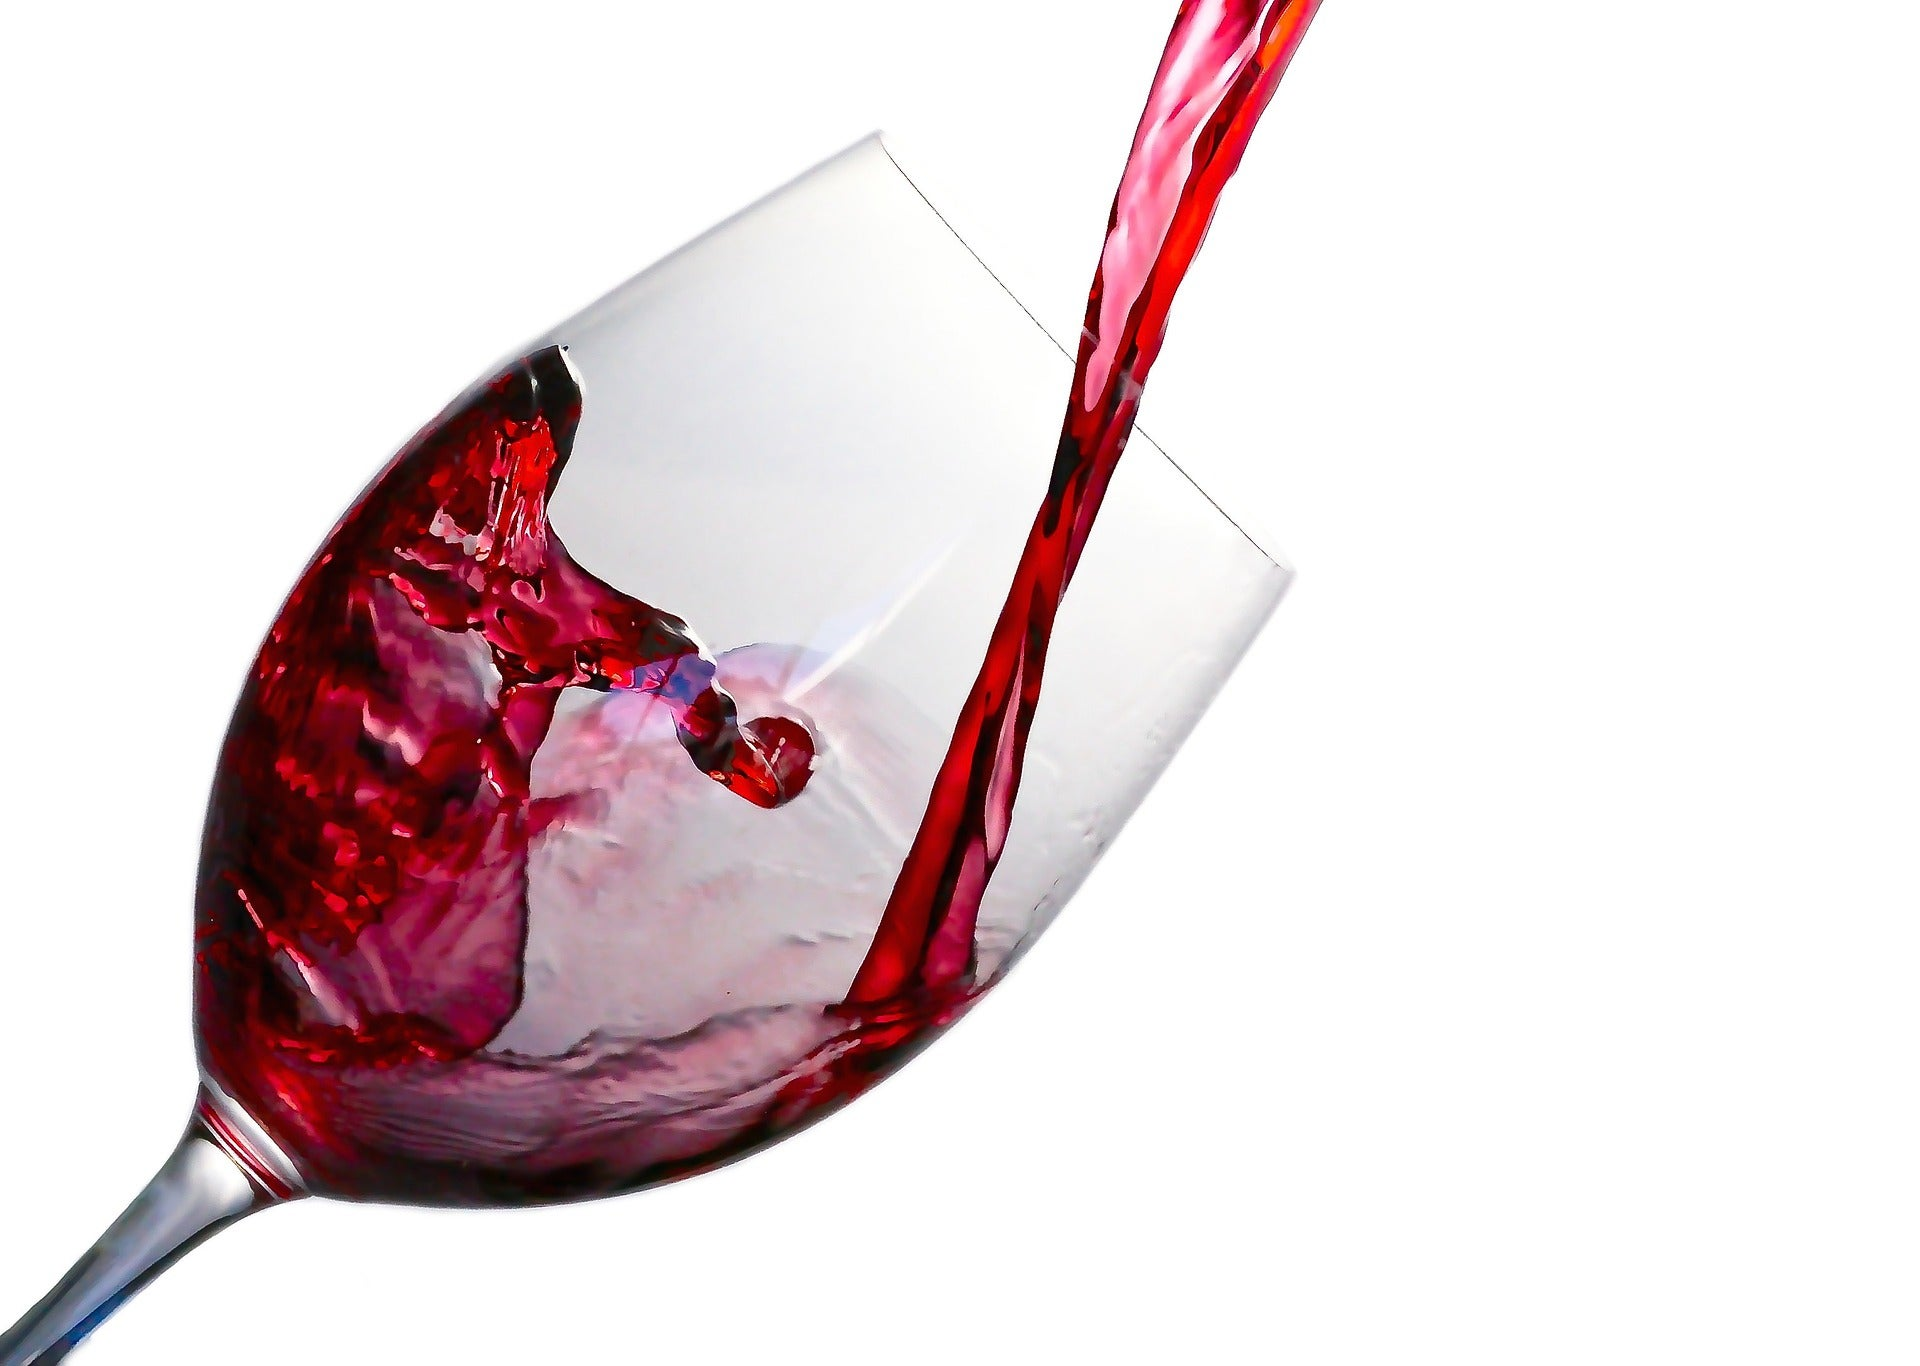 Why does red wine make me feel sick?